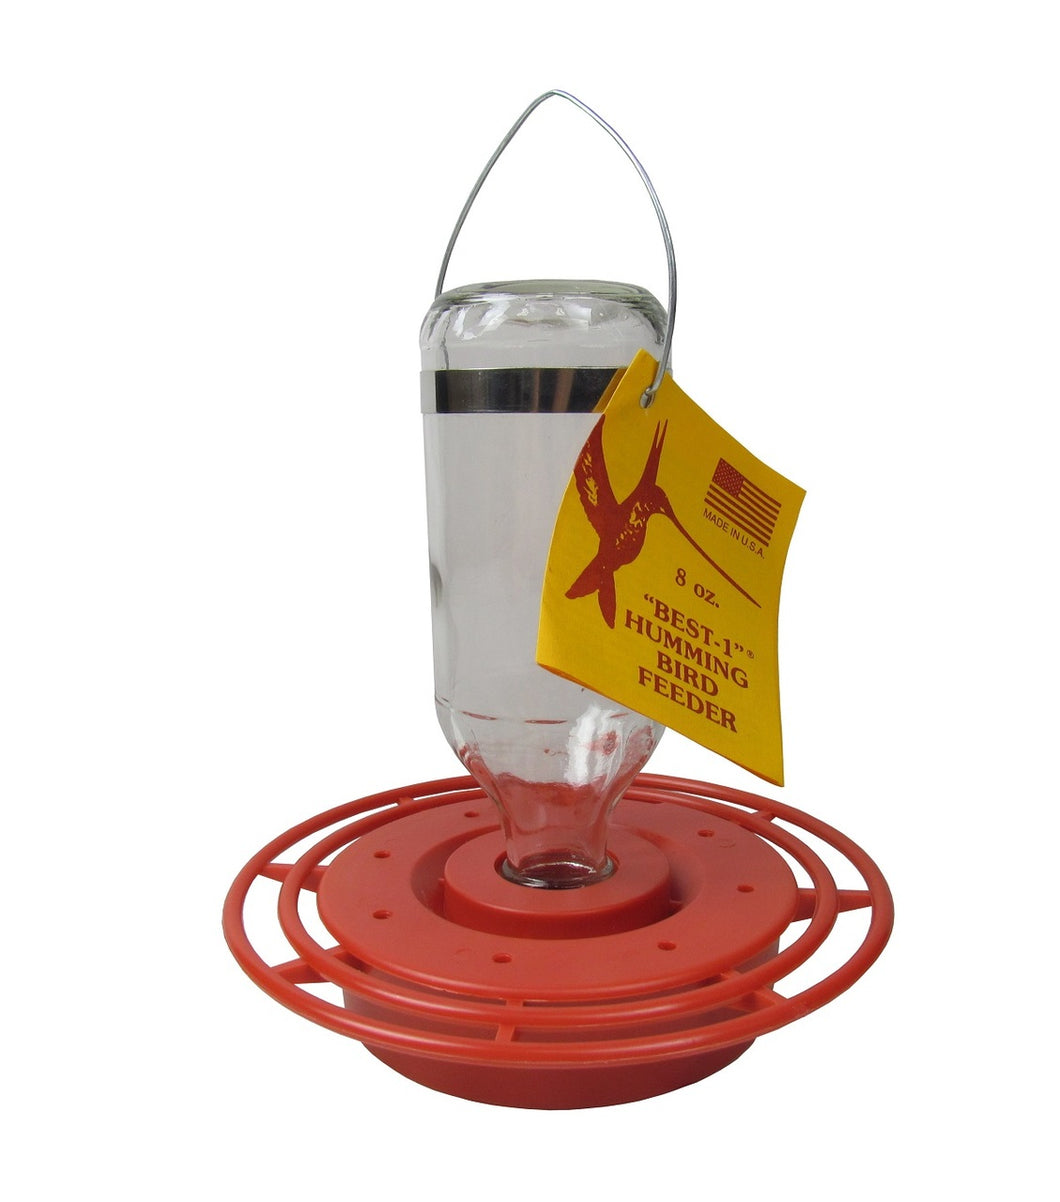 Best-1 Hummingbird Feeder - 8 oz